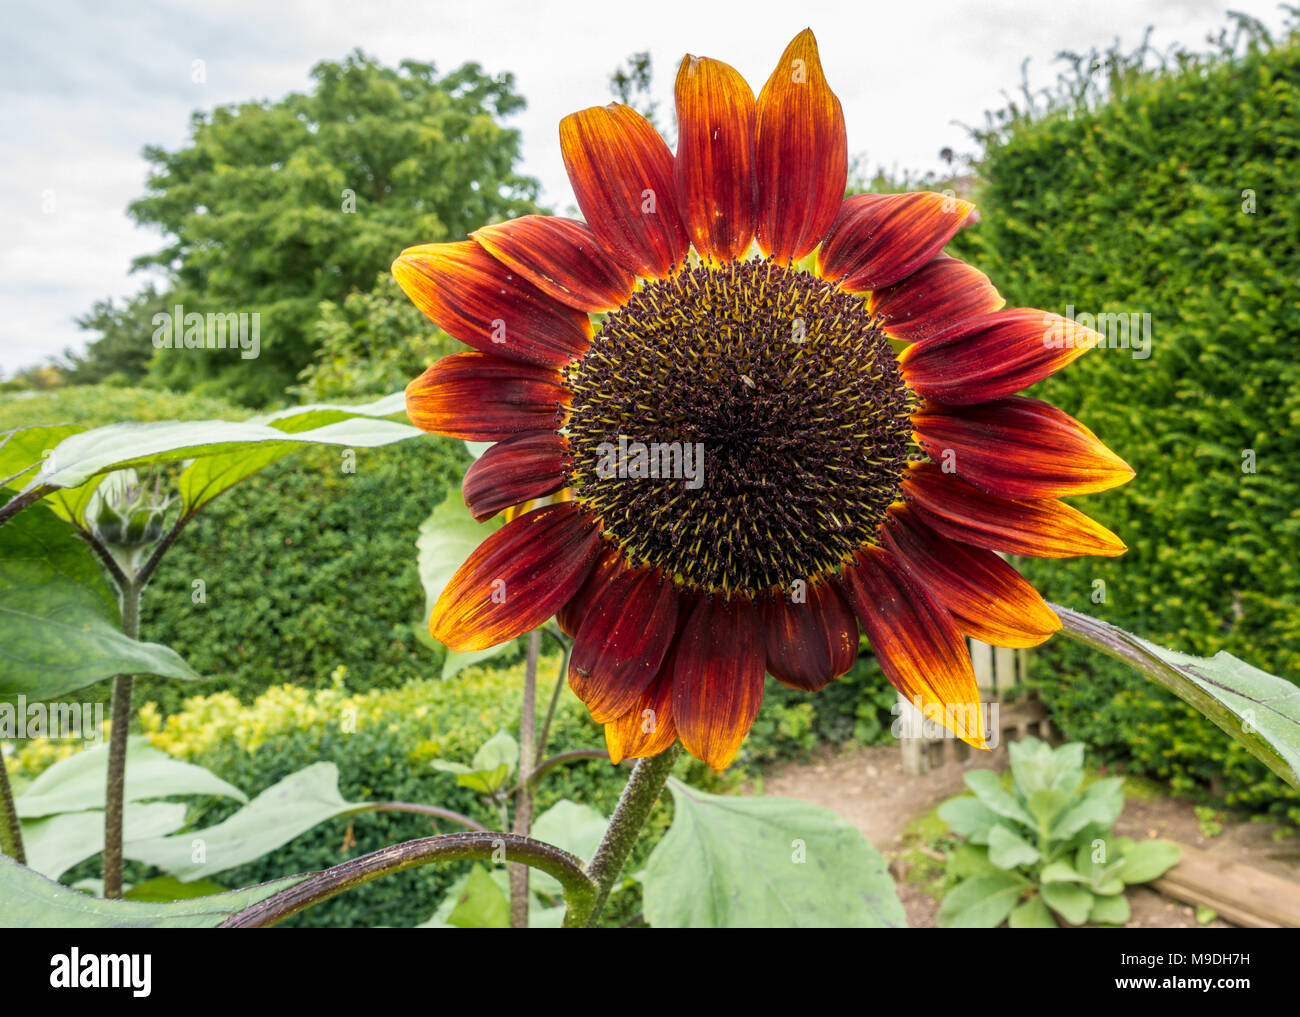 Red sunflower head - Stock Image